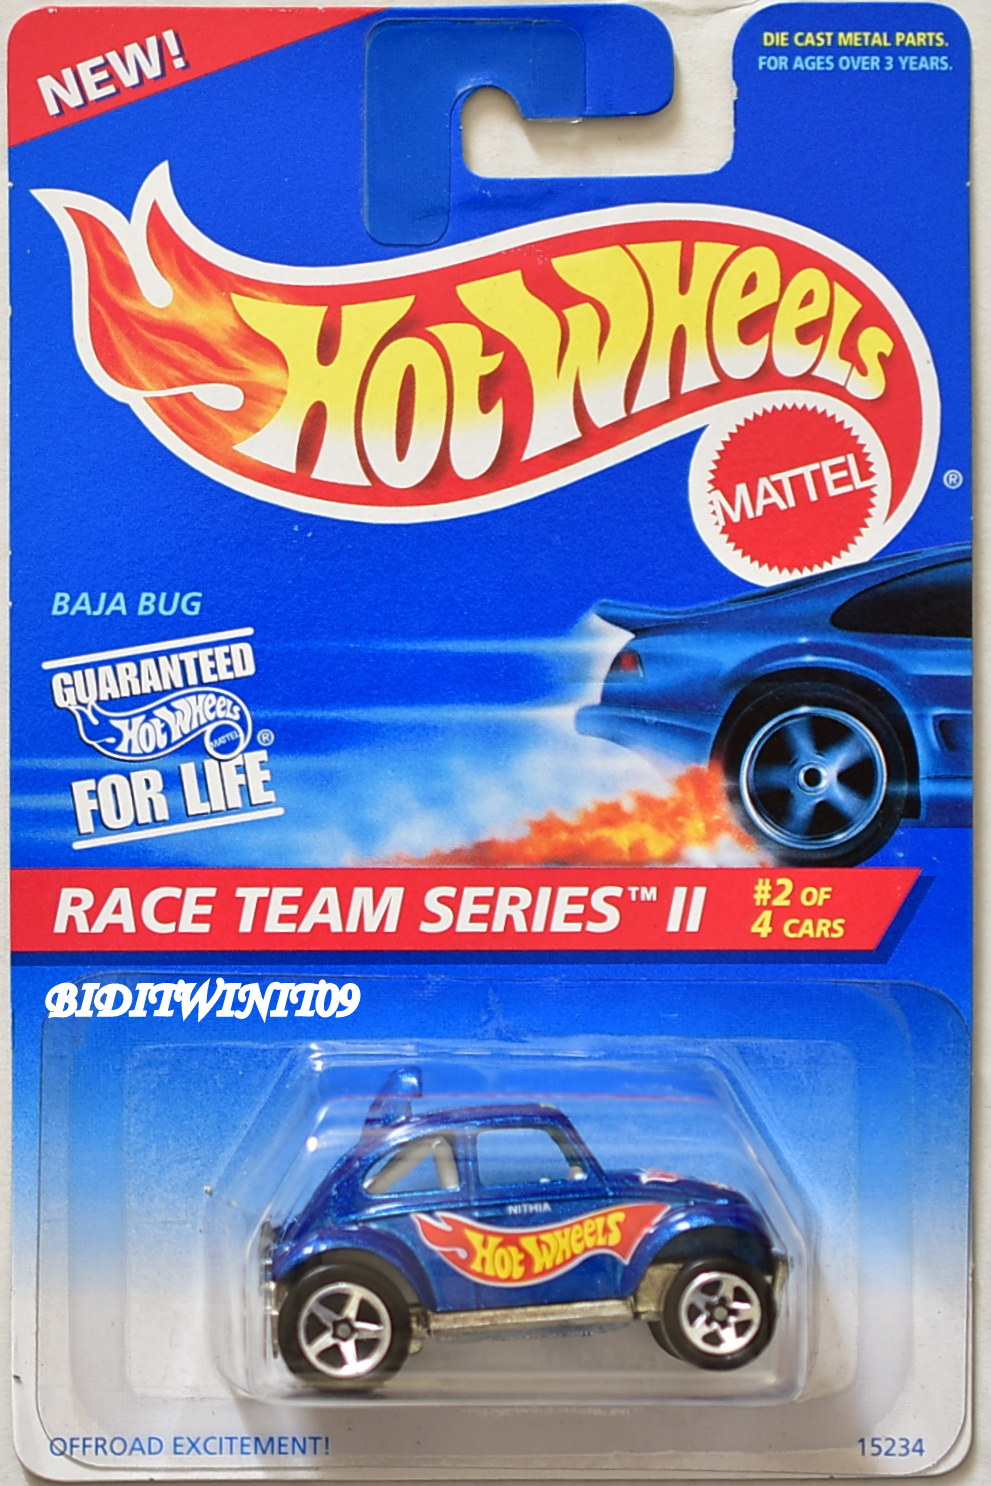 HOT WHEELS 1995 RACE TEAM SERIES II BAJA BUG #393 BLUE